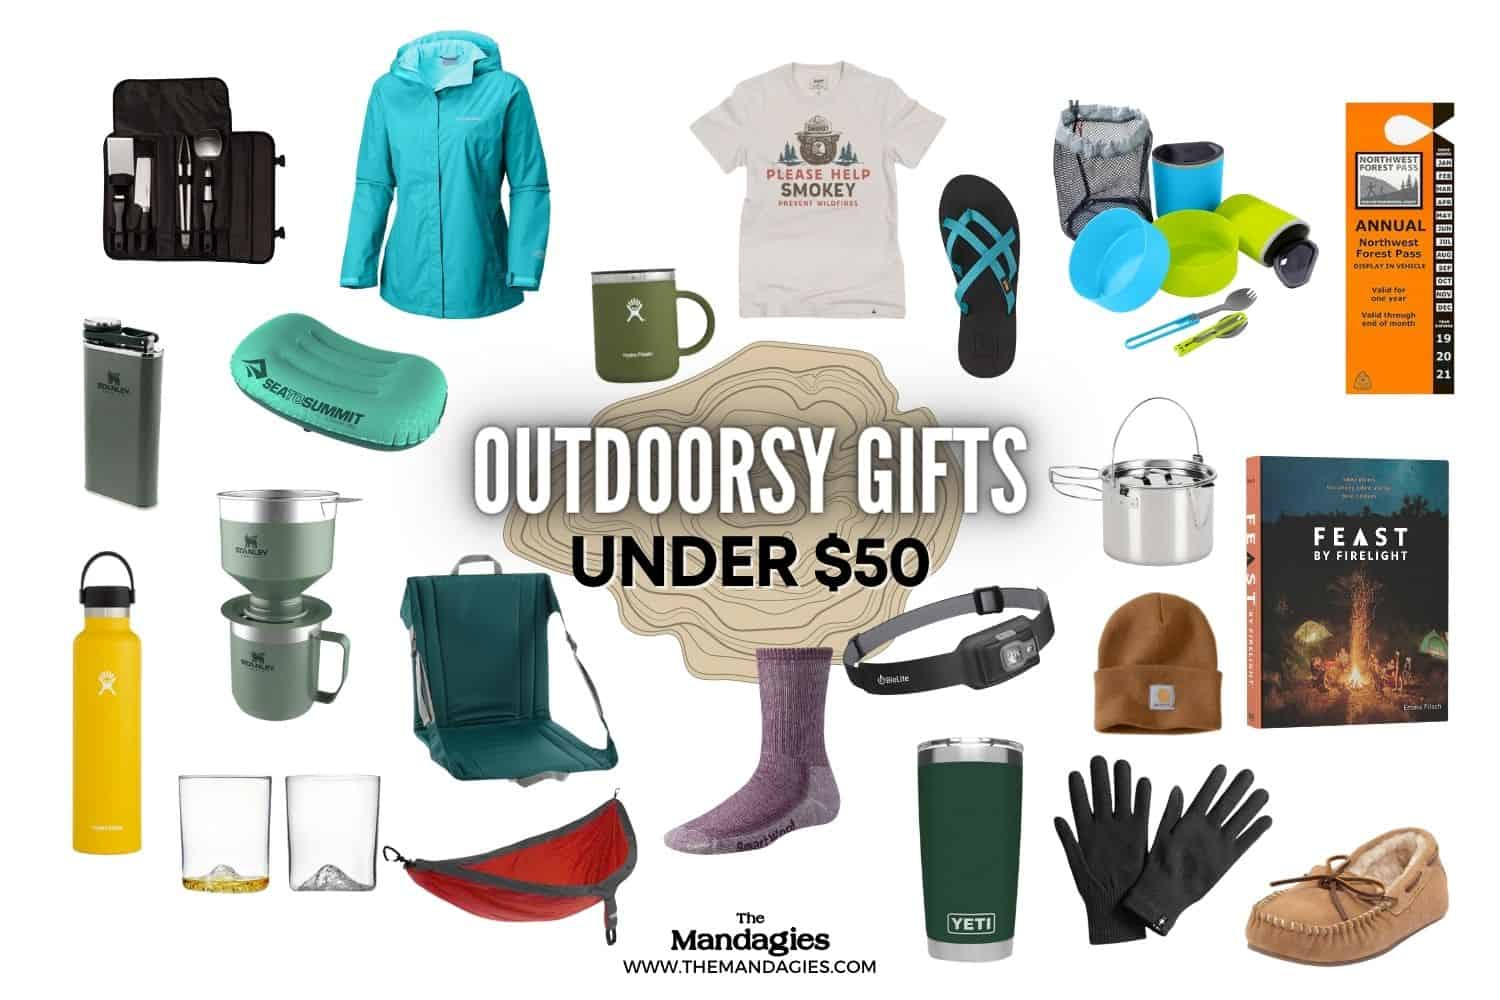 30+ Outdoor Gifts Under $50 For The Budget-Friendly Adventure Lover